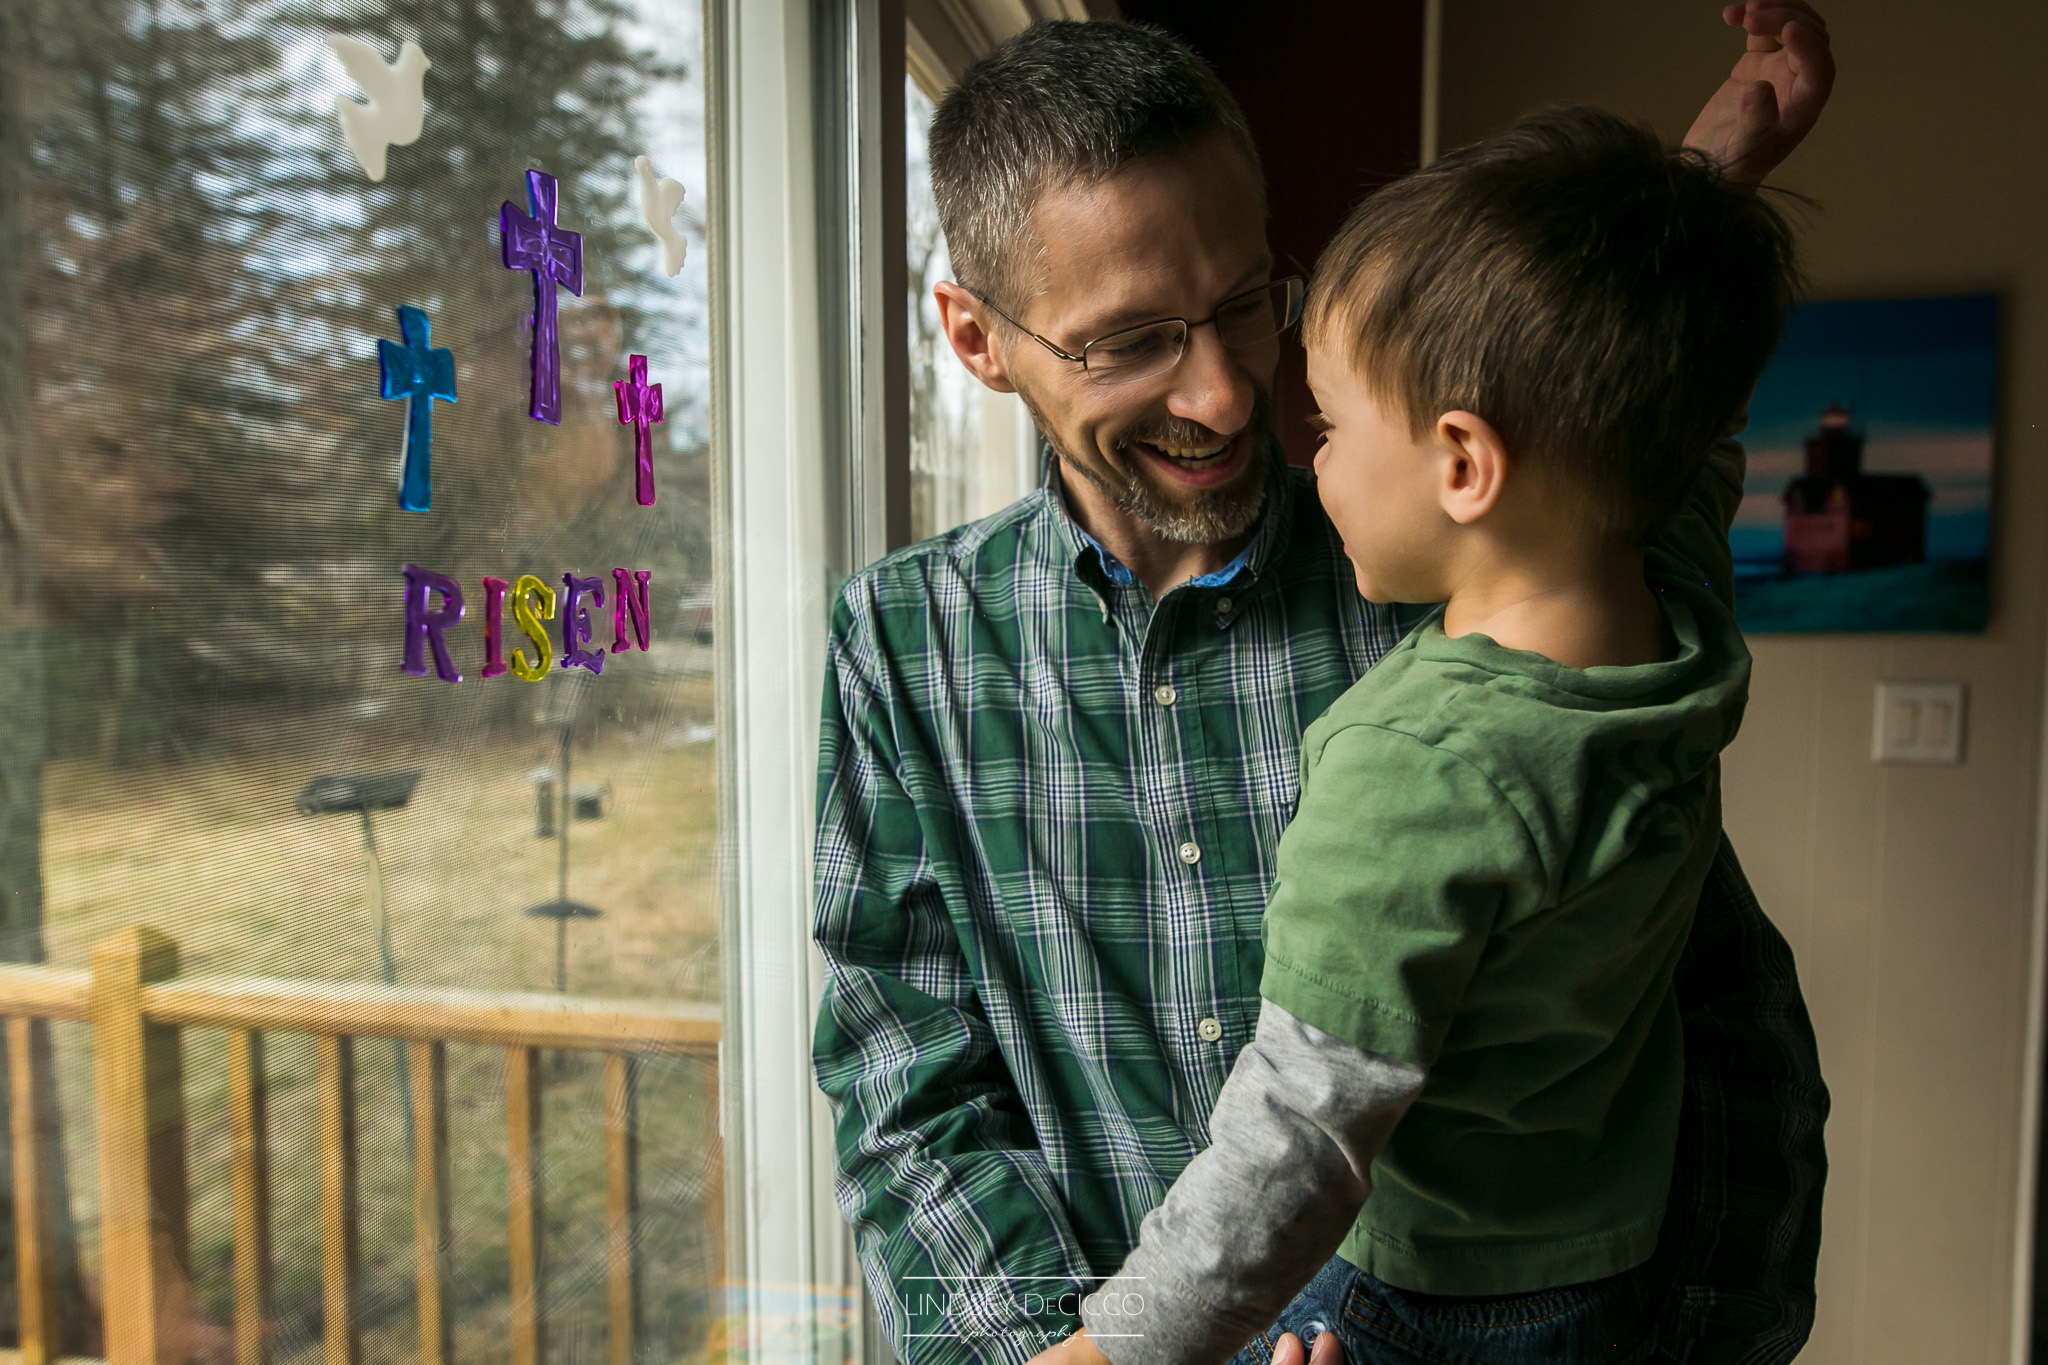 father and son looking at risen sign on window